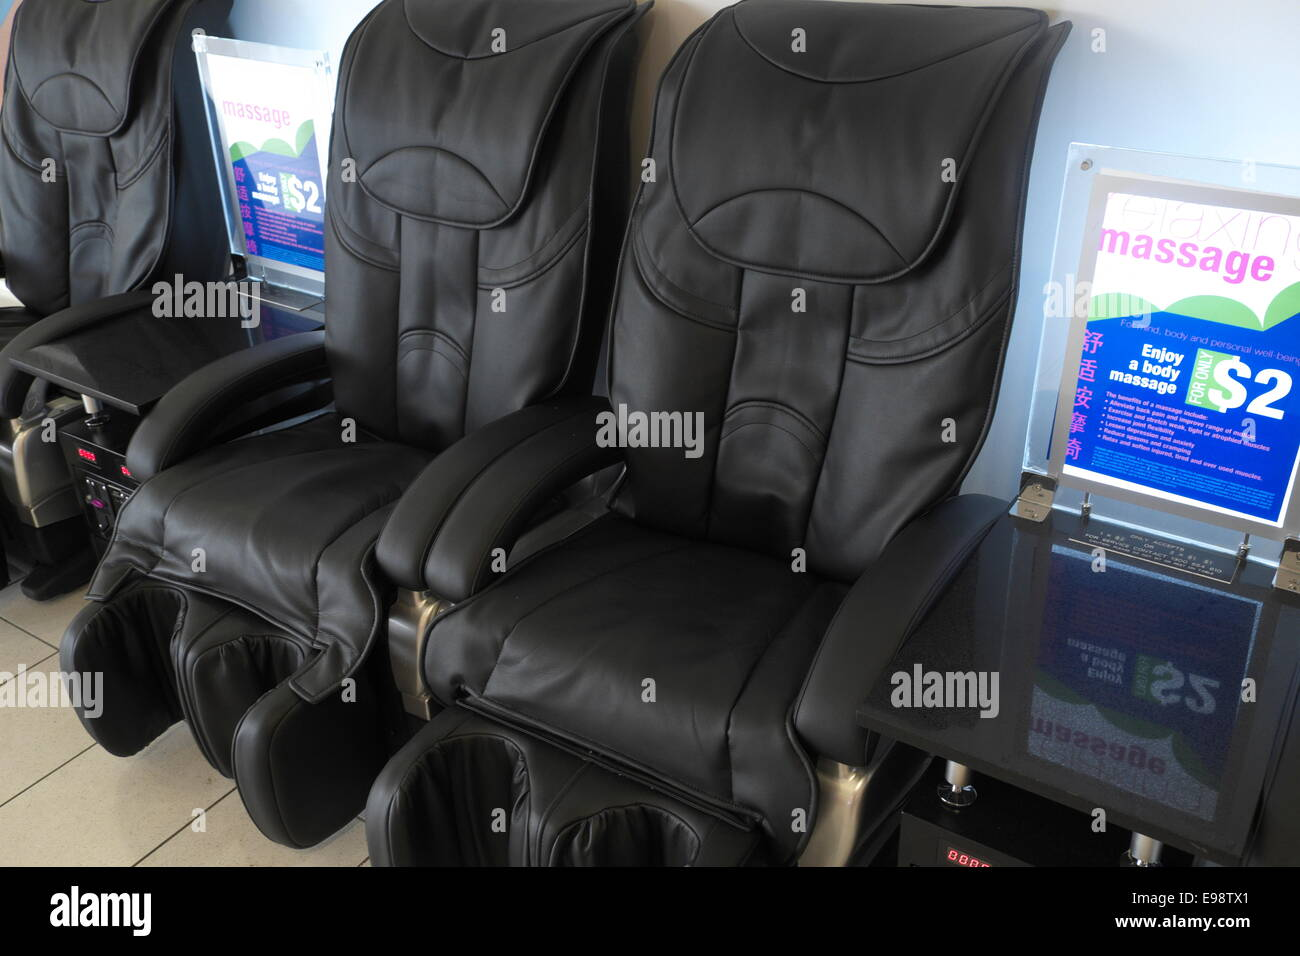 massage chairs stock photos massage chairs stock images alamy